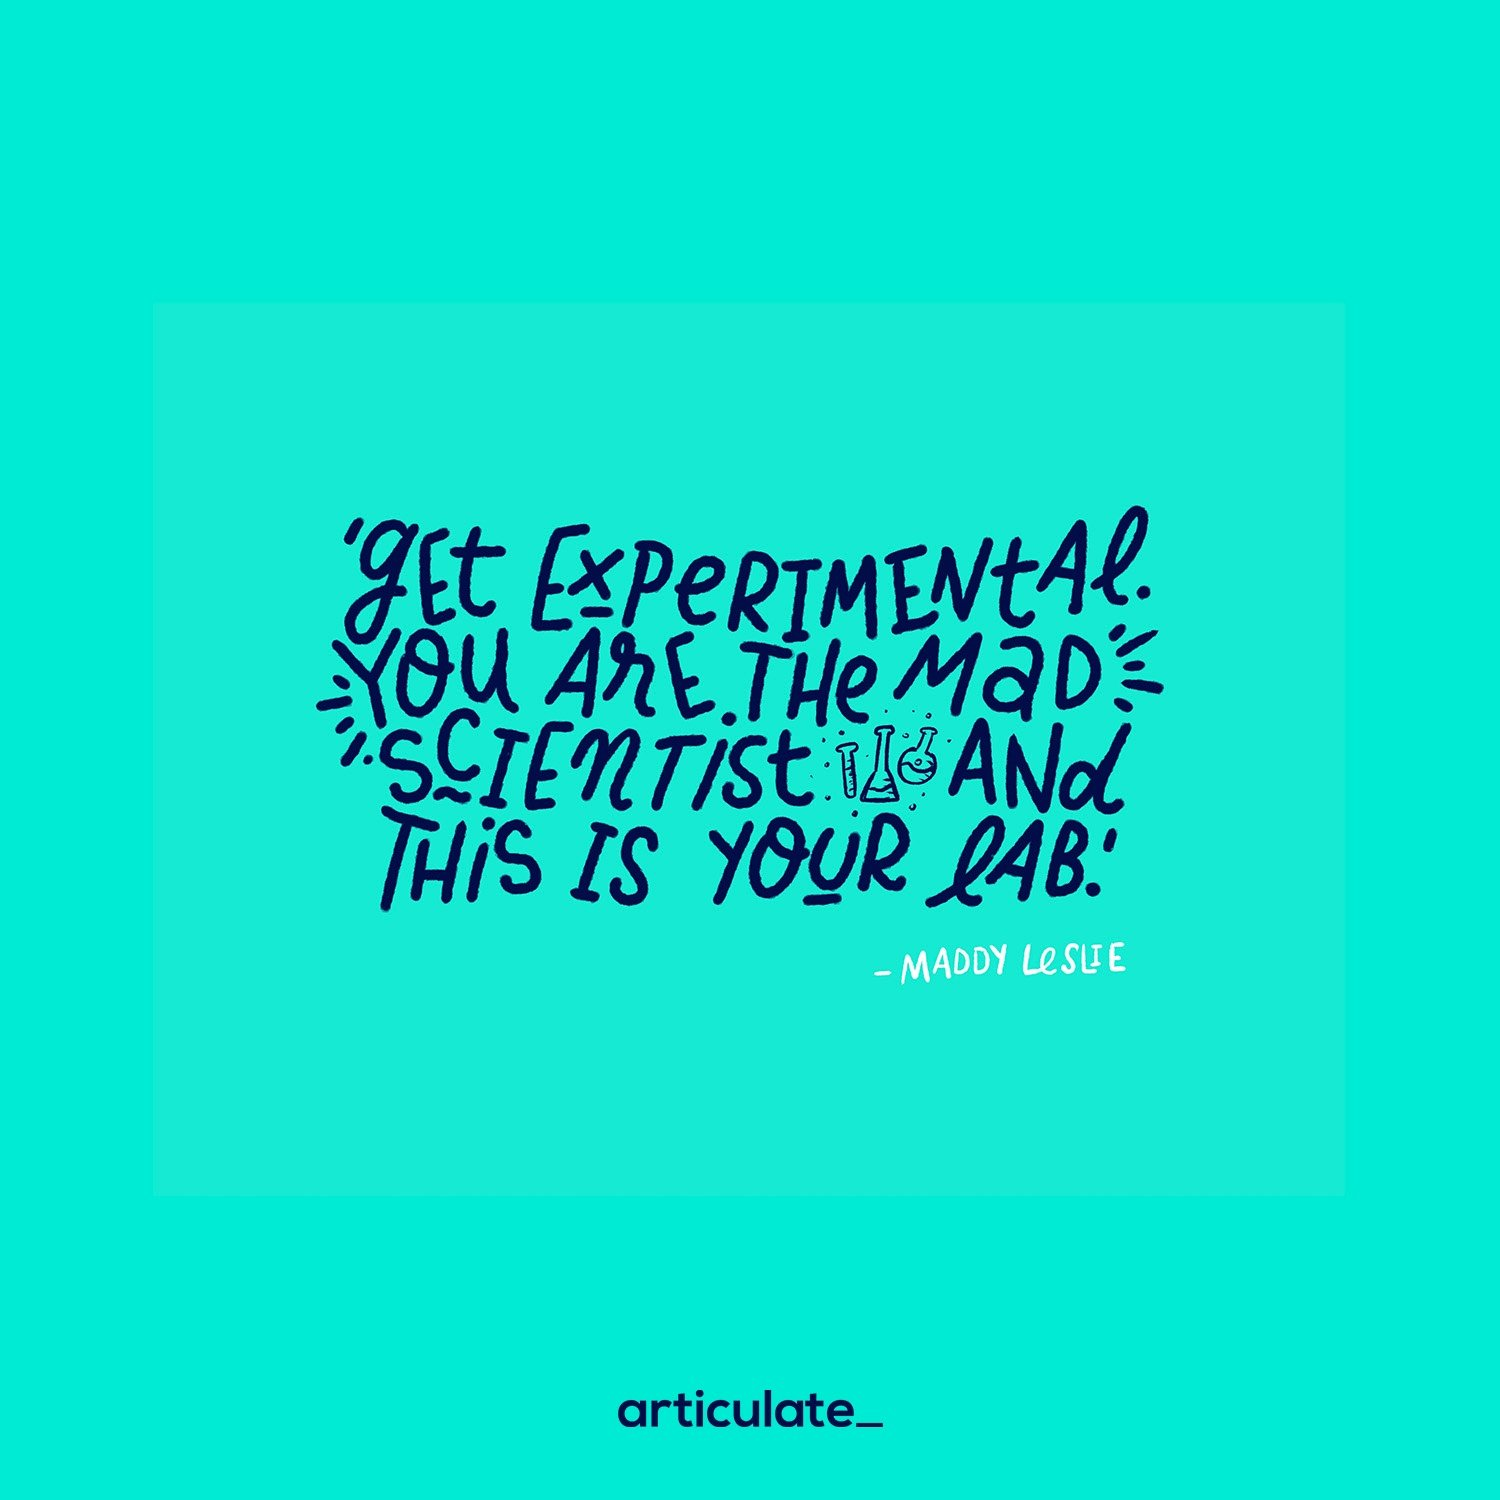 mad scientist quote - B2B content marketing strategy